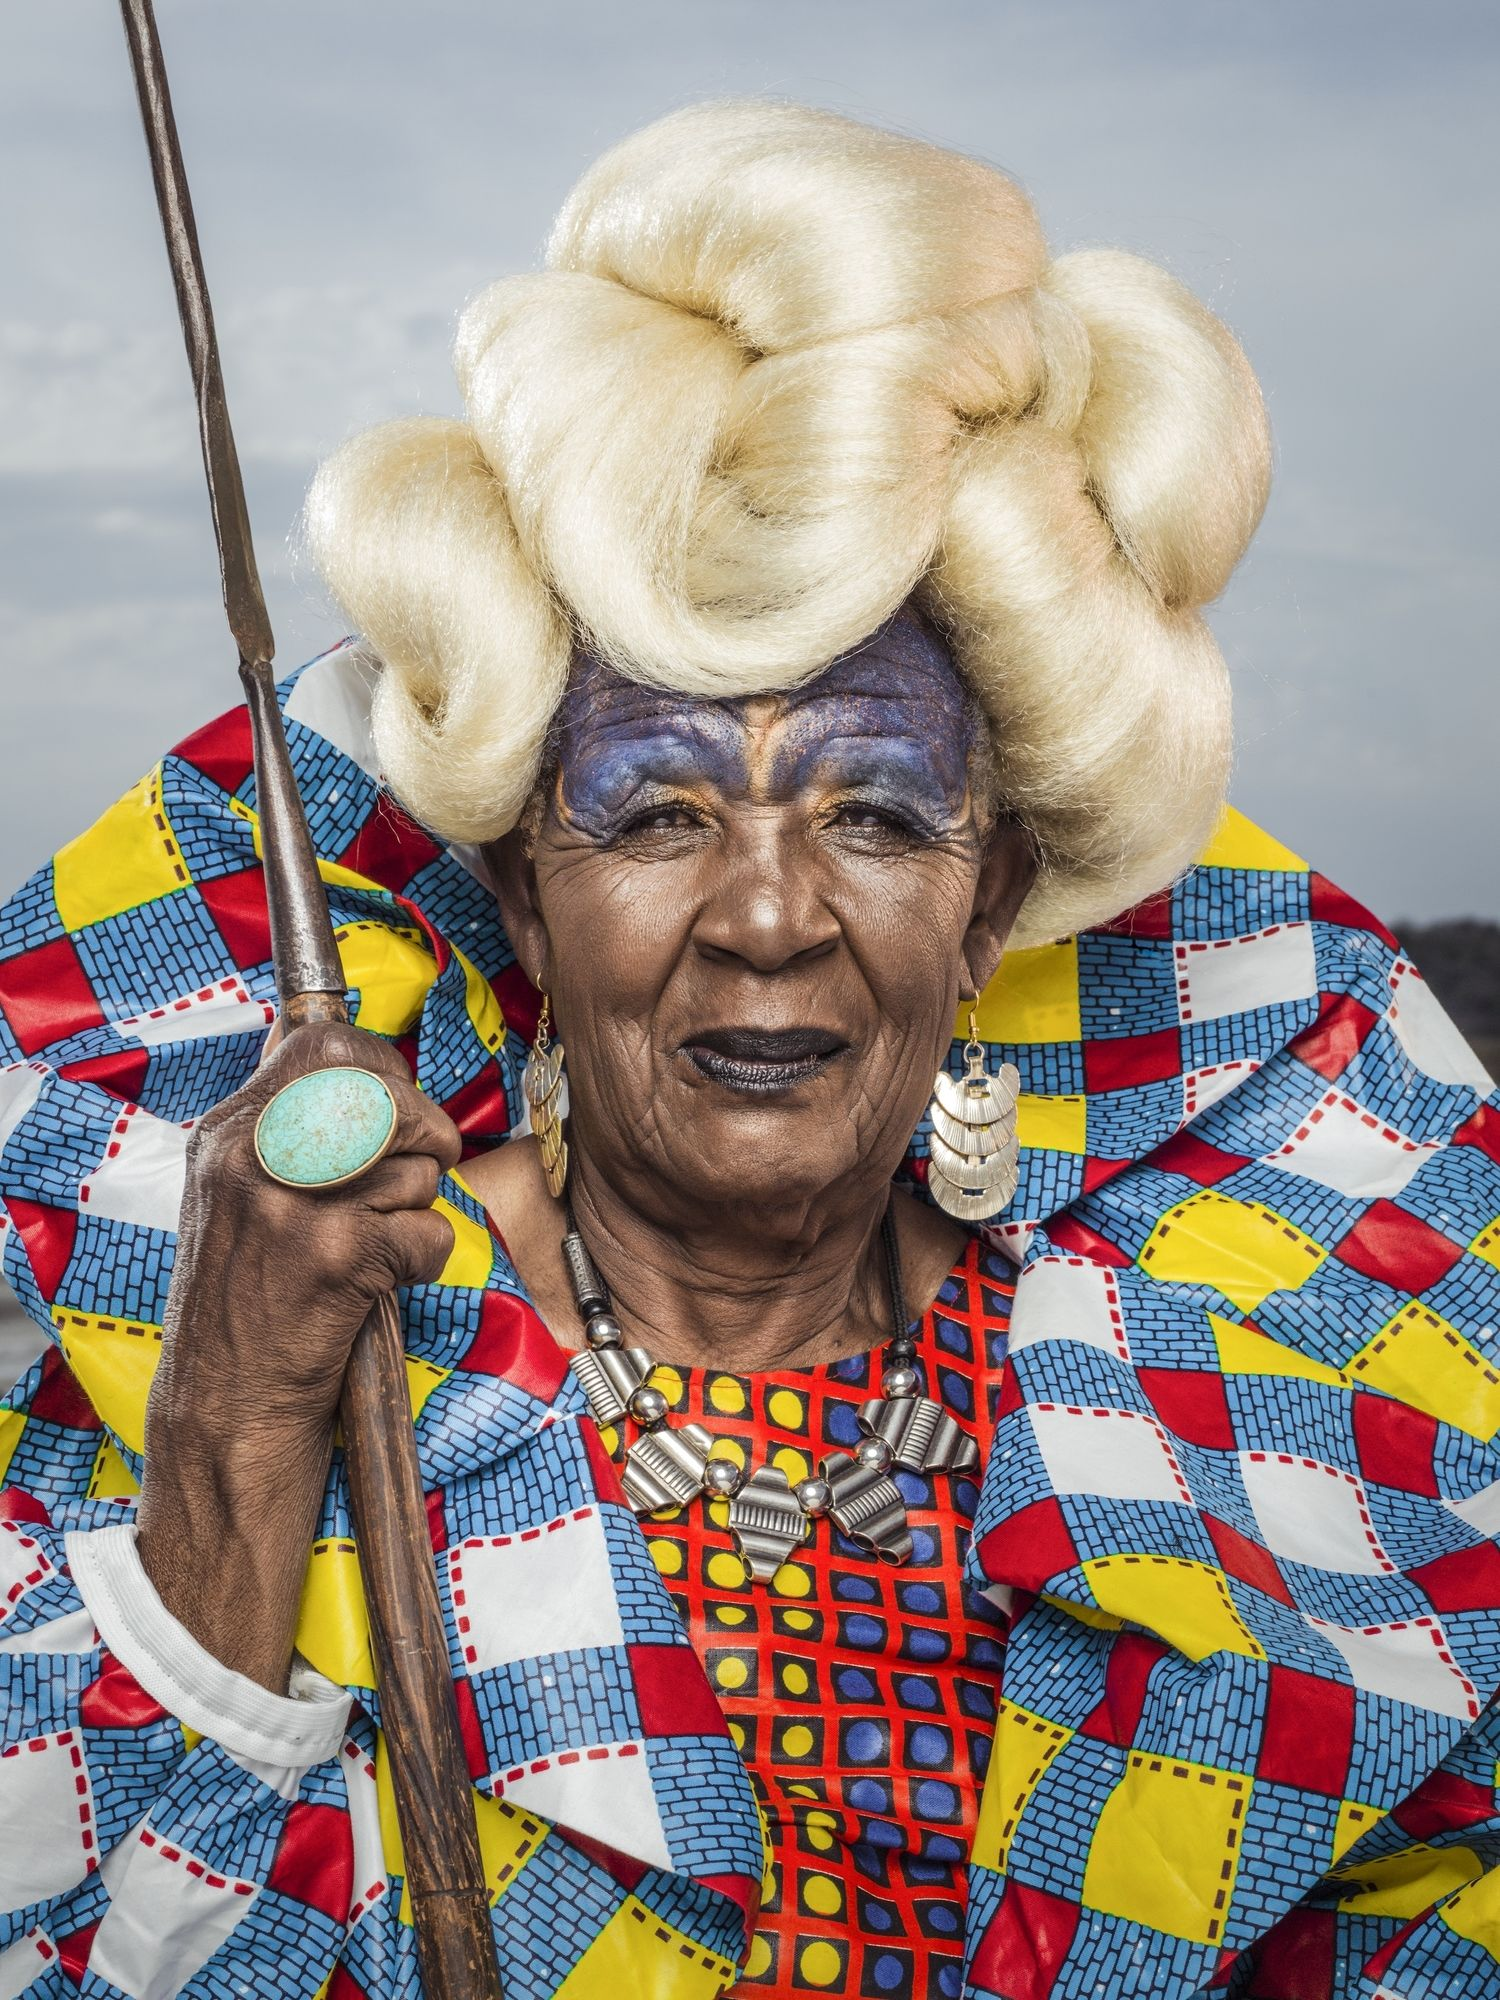 Now. Look. Here. The African Art of Appearance (25 January - 23 February 2020)